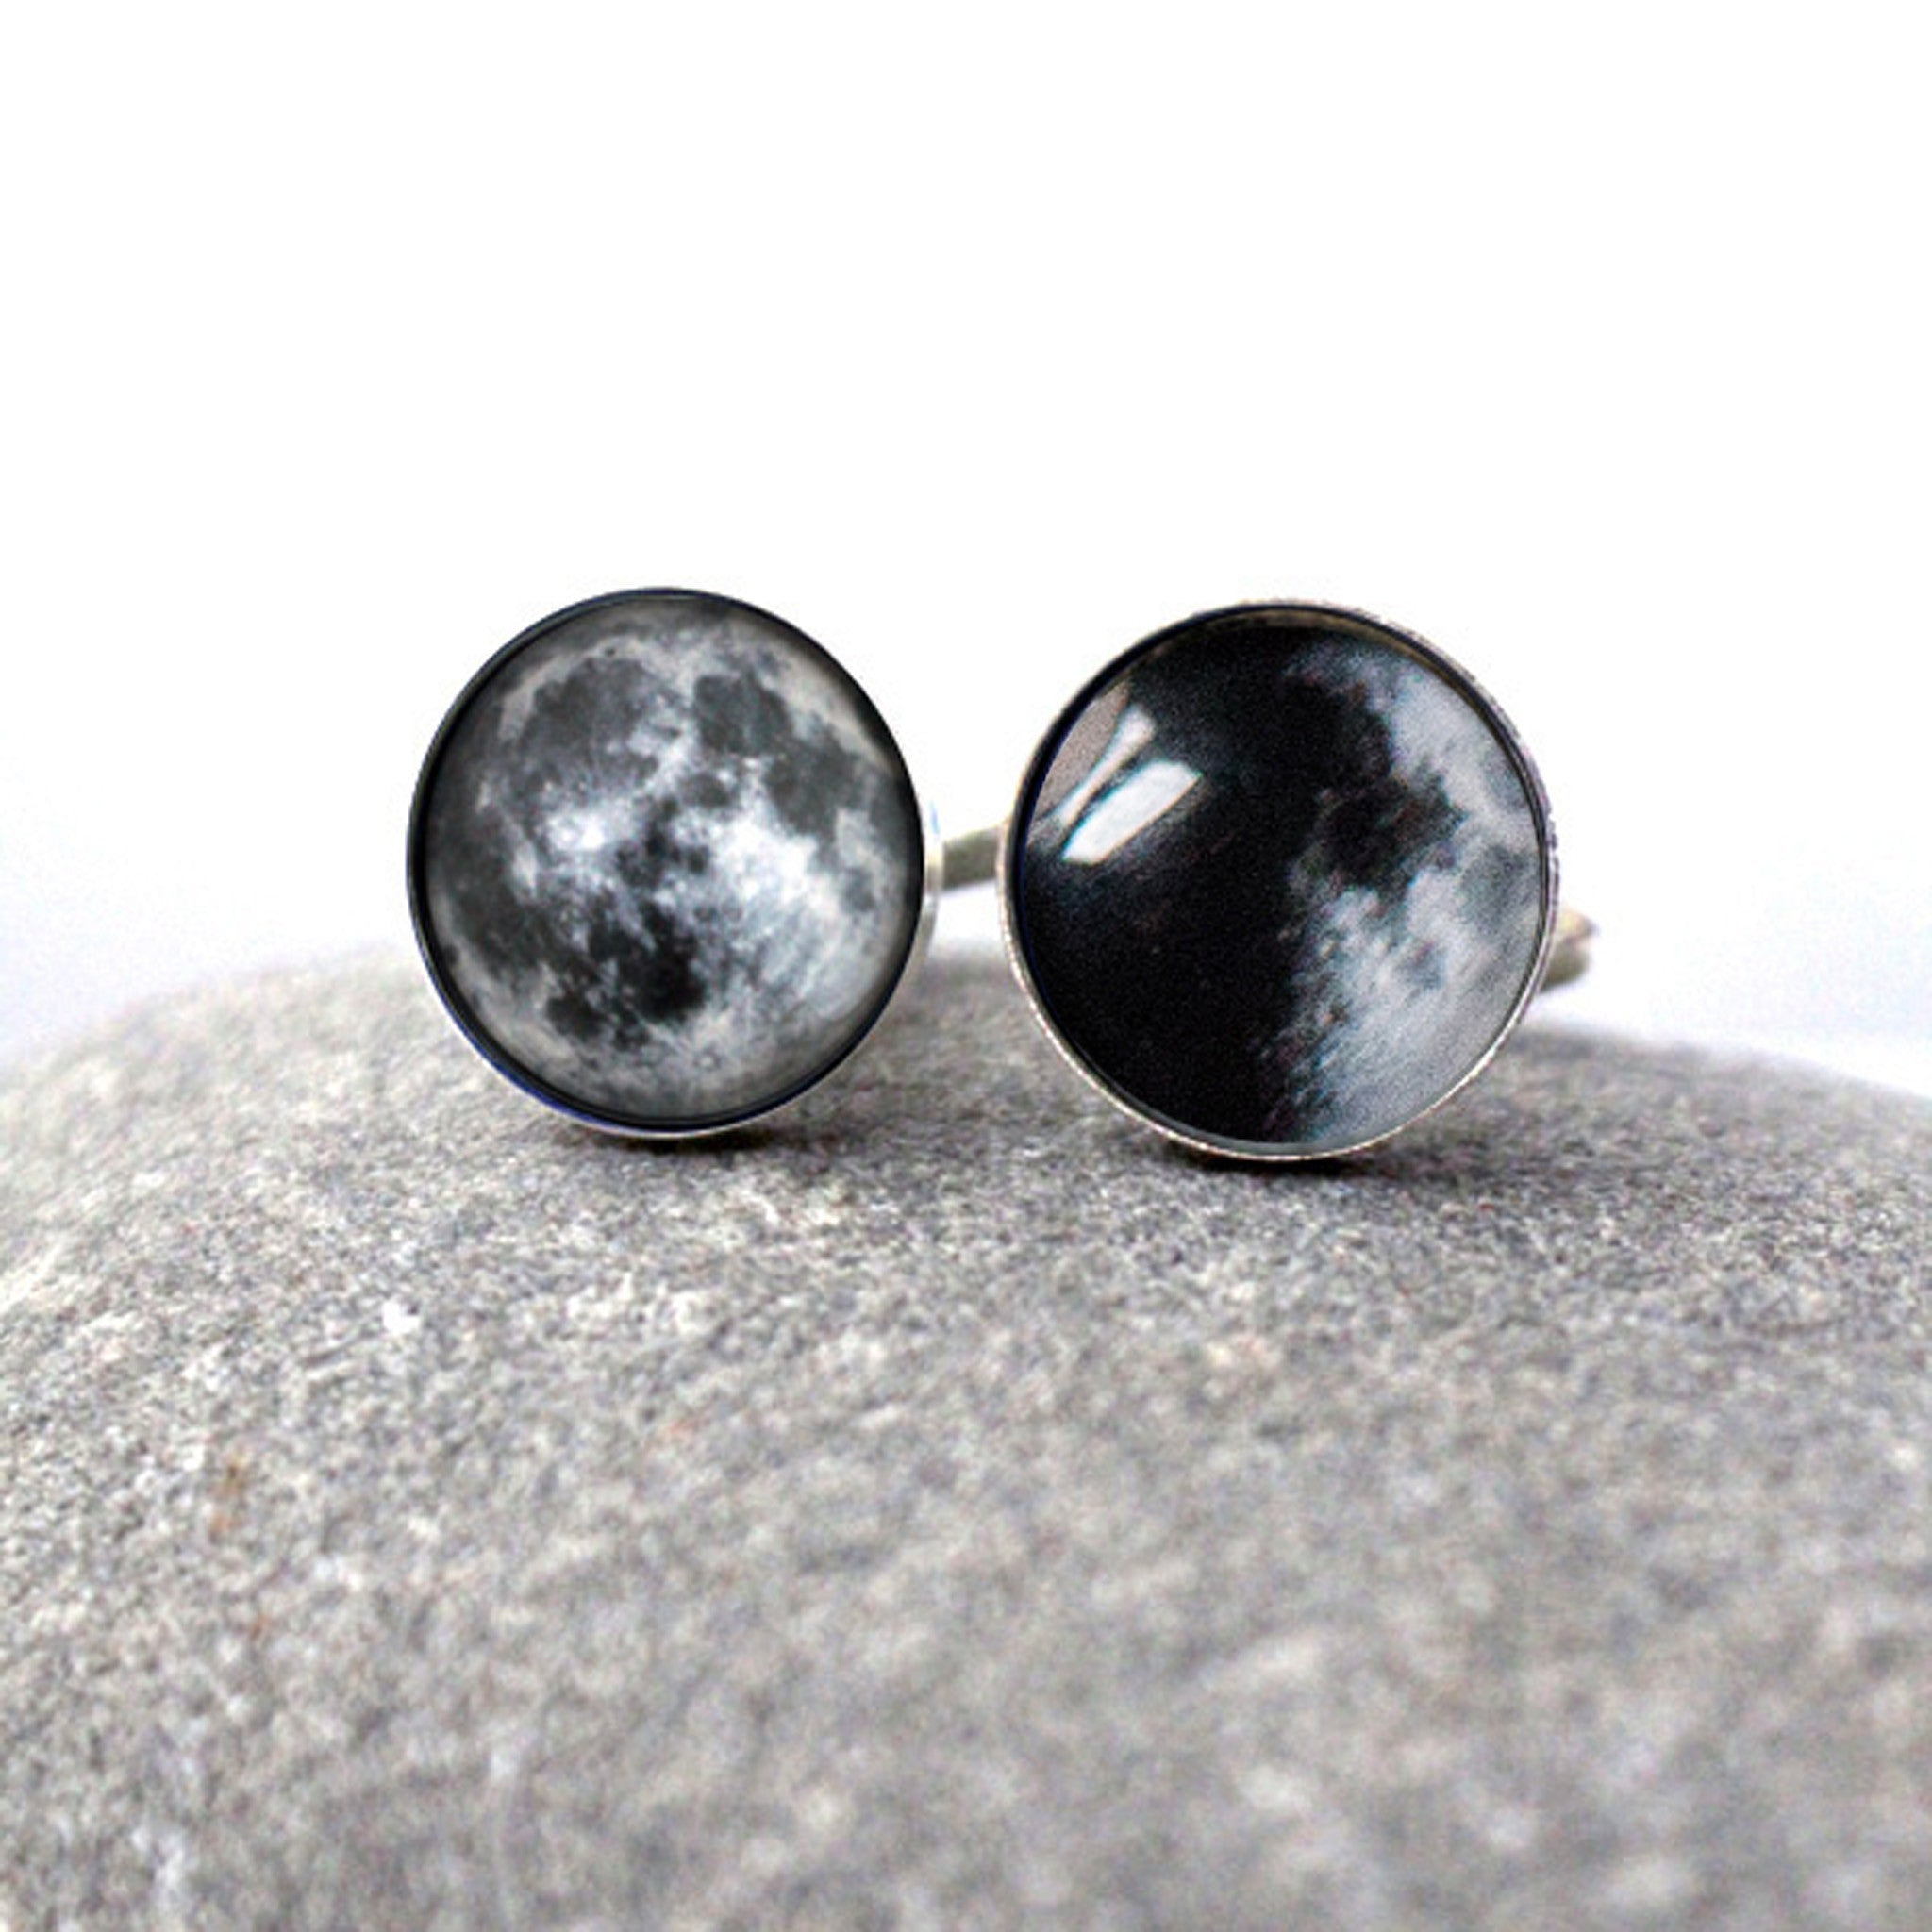 Moon Date Cufflinks - Birth moon, anniversary moon, wedding gift, fathers day present - Handmade lunar moon phase jewelry by yugentribe